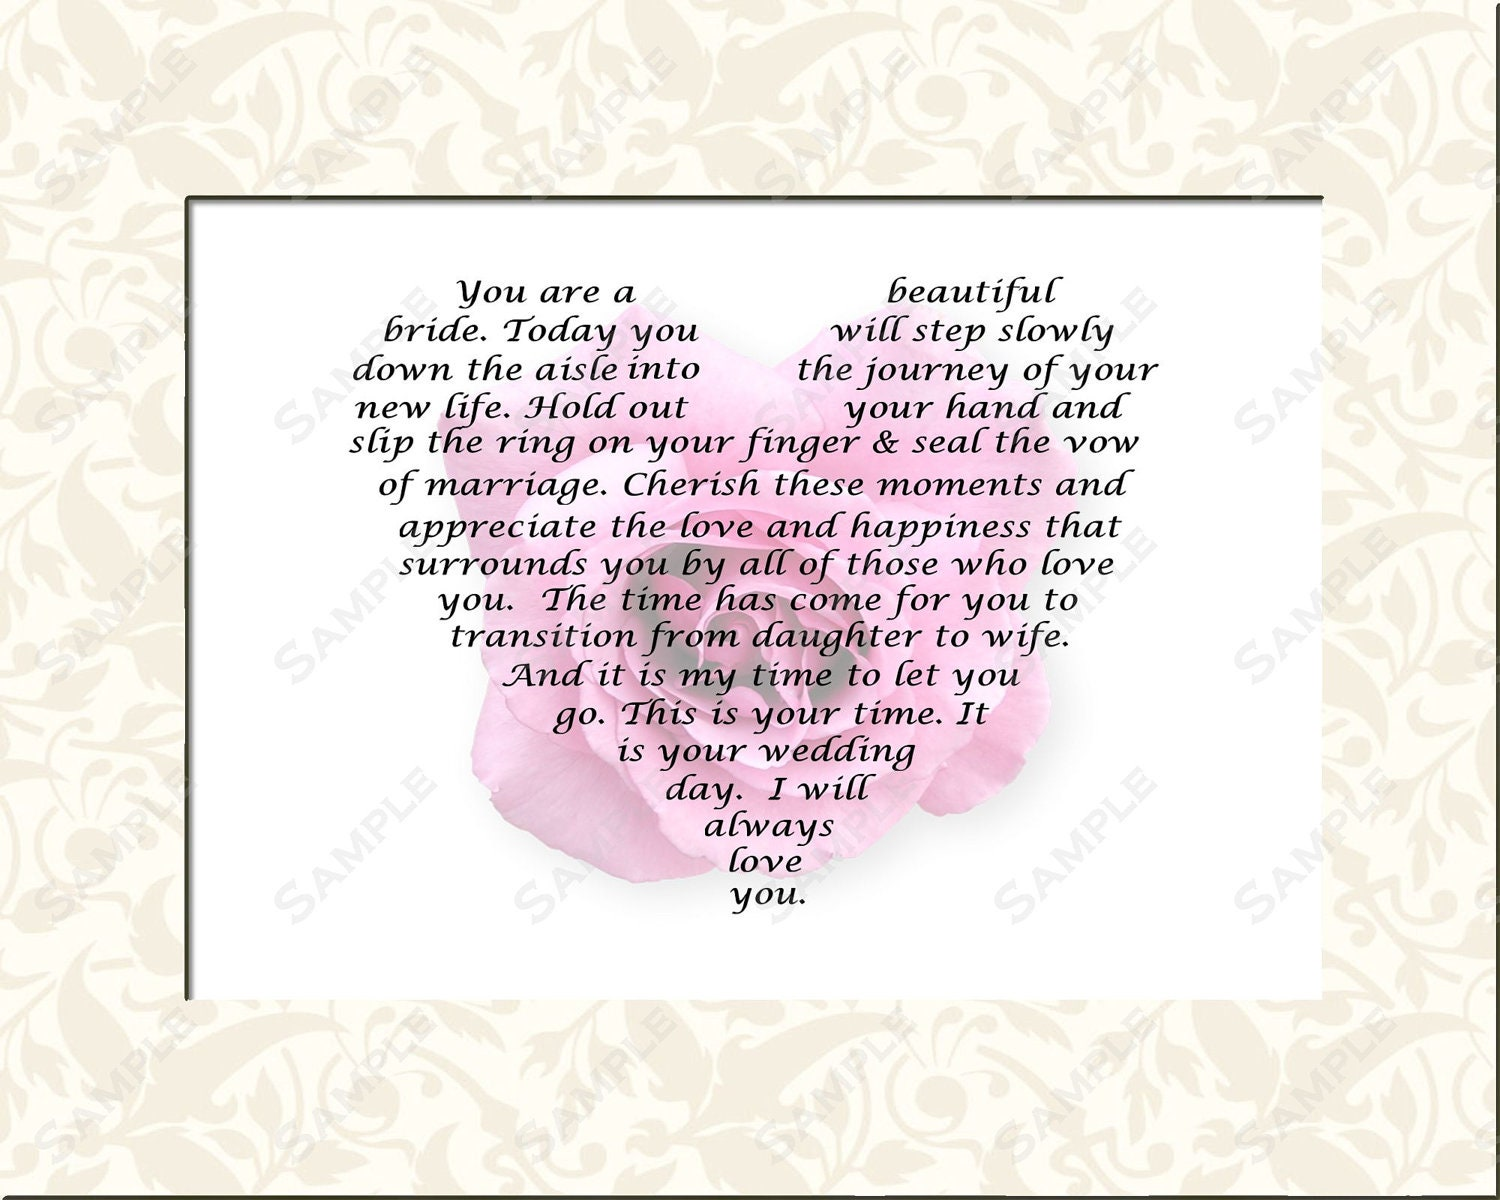 Wedding Gift For Bride From Mom : Personalized Bridal Gift for Wedding Day Gift Poem from Mom or